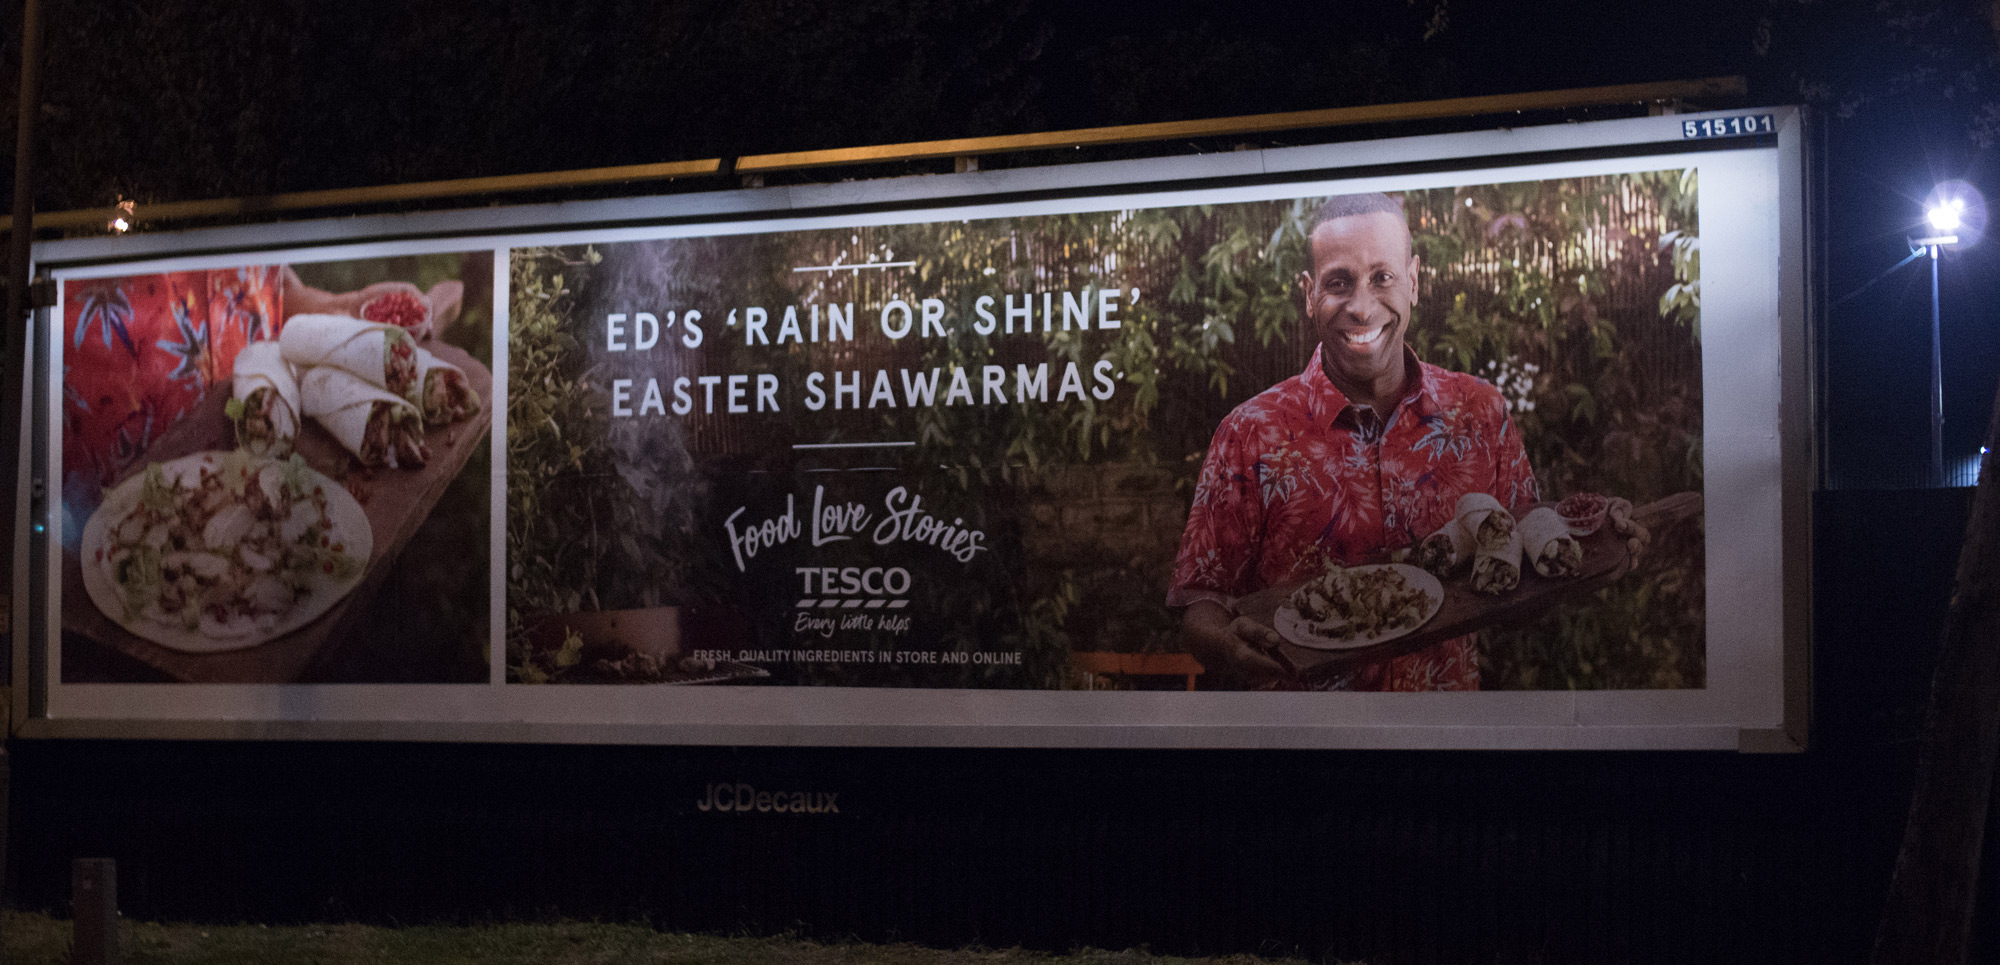 TESCOS FOOD STORIES  - NATIONAL INSTORE/ ONLINE / BILLBOARD CAMPAIGN 2017